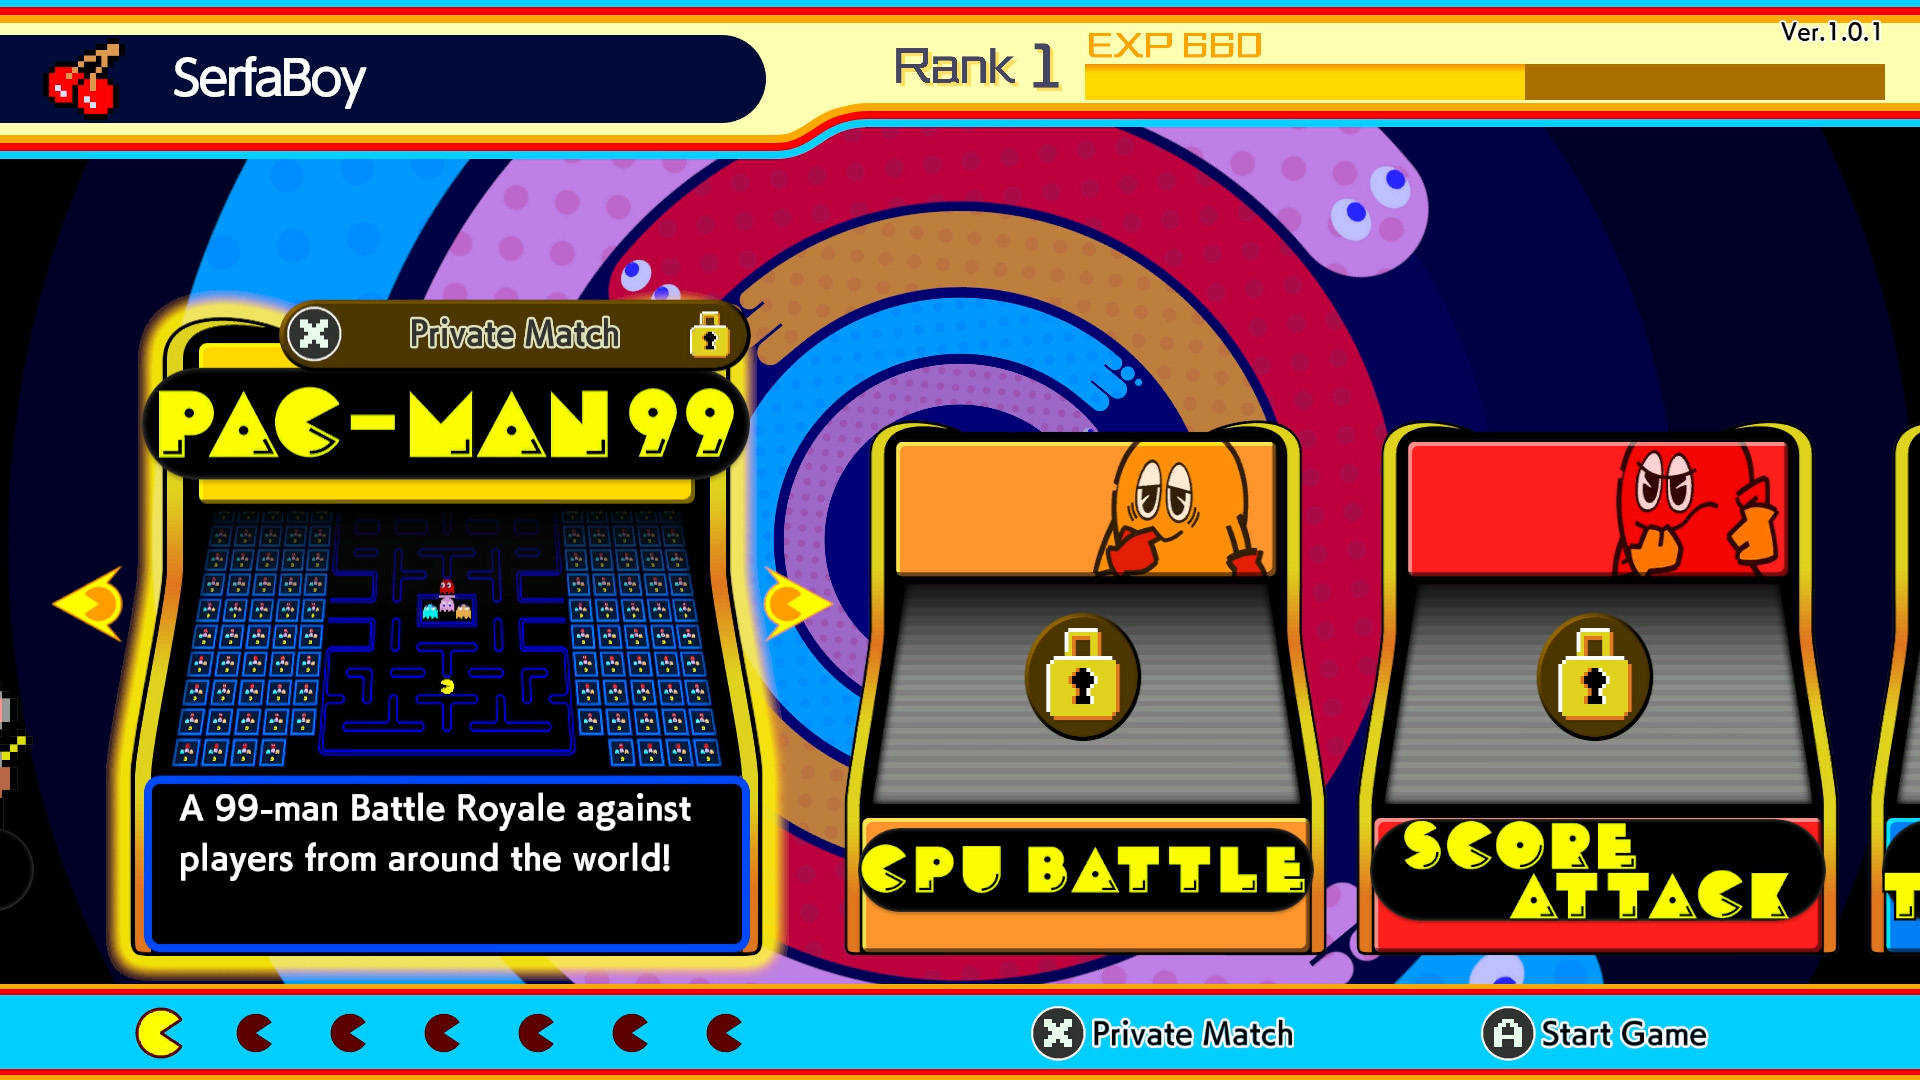 pac-man 99 play with friends private match